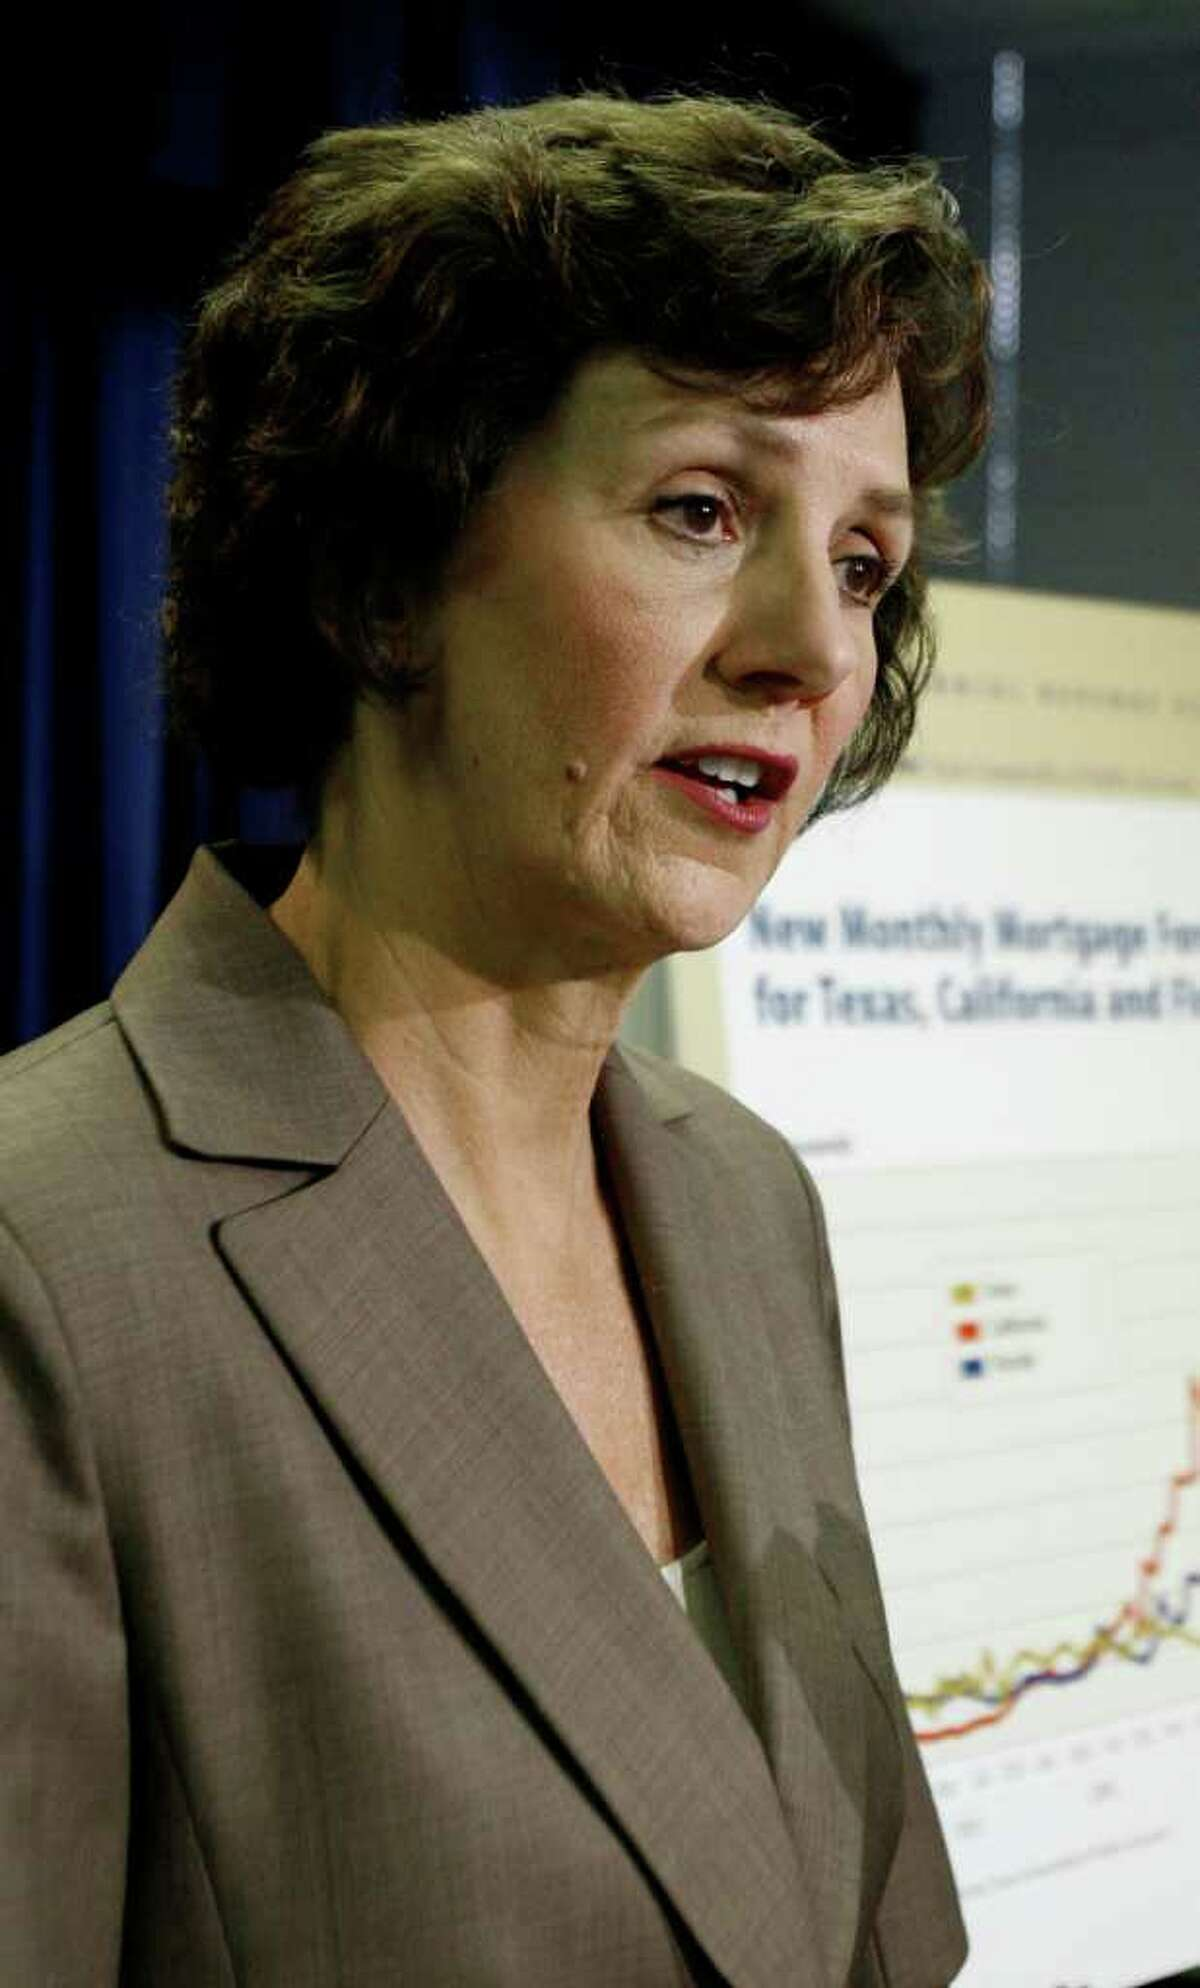 Texas Comptroller Susan Combs speaks during a news conference Monday, Jan. 12, 2009, in Austin, Texas. She says Texas revenue will drop about $9 billion in the next two-year spending cycle. The grim news comes the day before lawmakers convene in Austin for this year's legislative session. The revenue estimate covers the 2010-2011 fiscal years and is based mostly on sales tax forecasts.